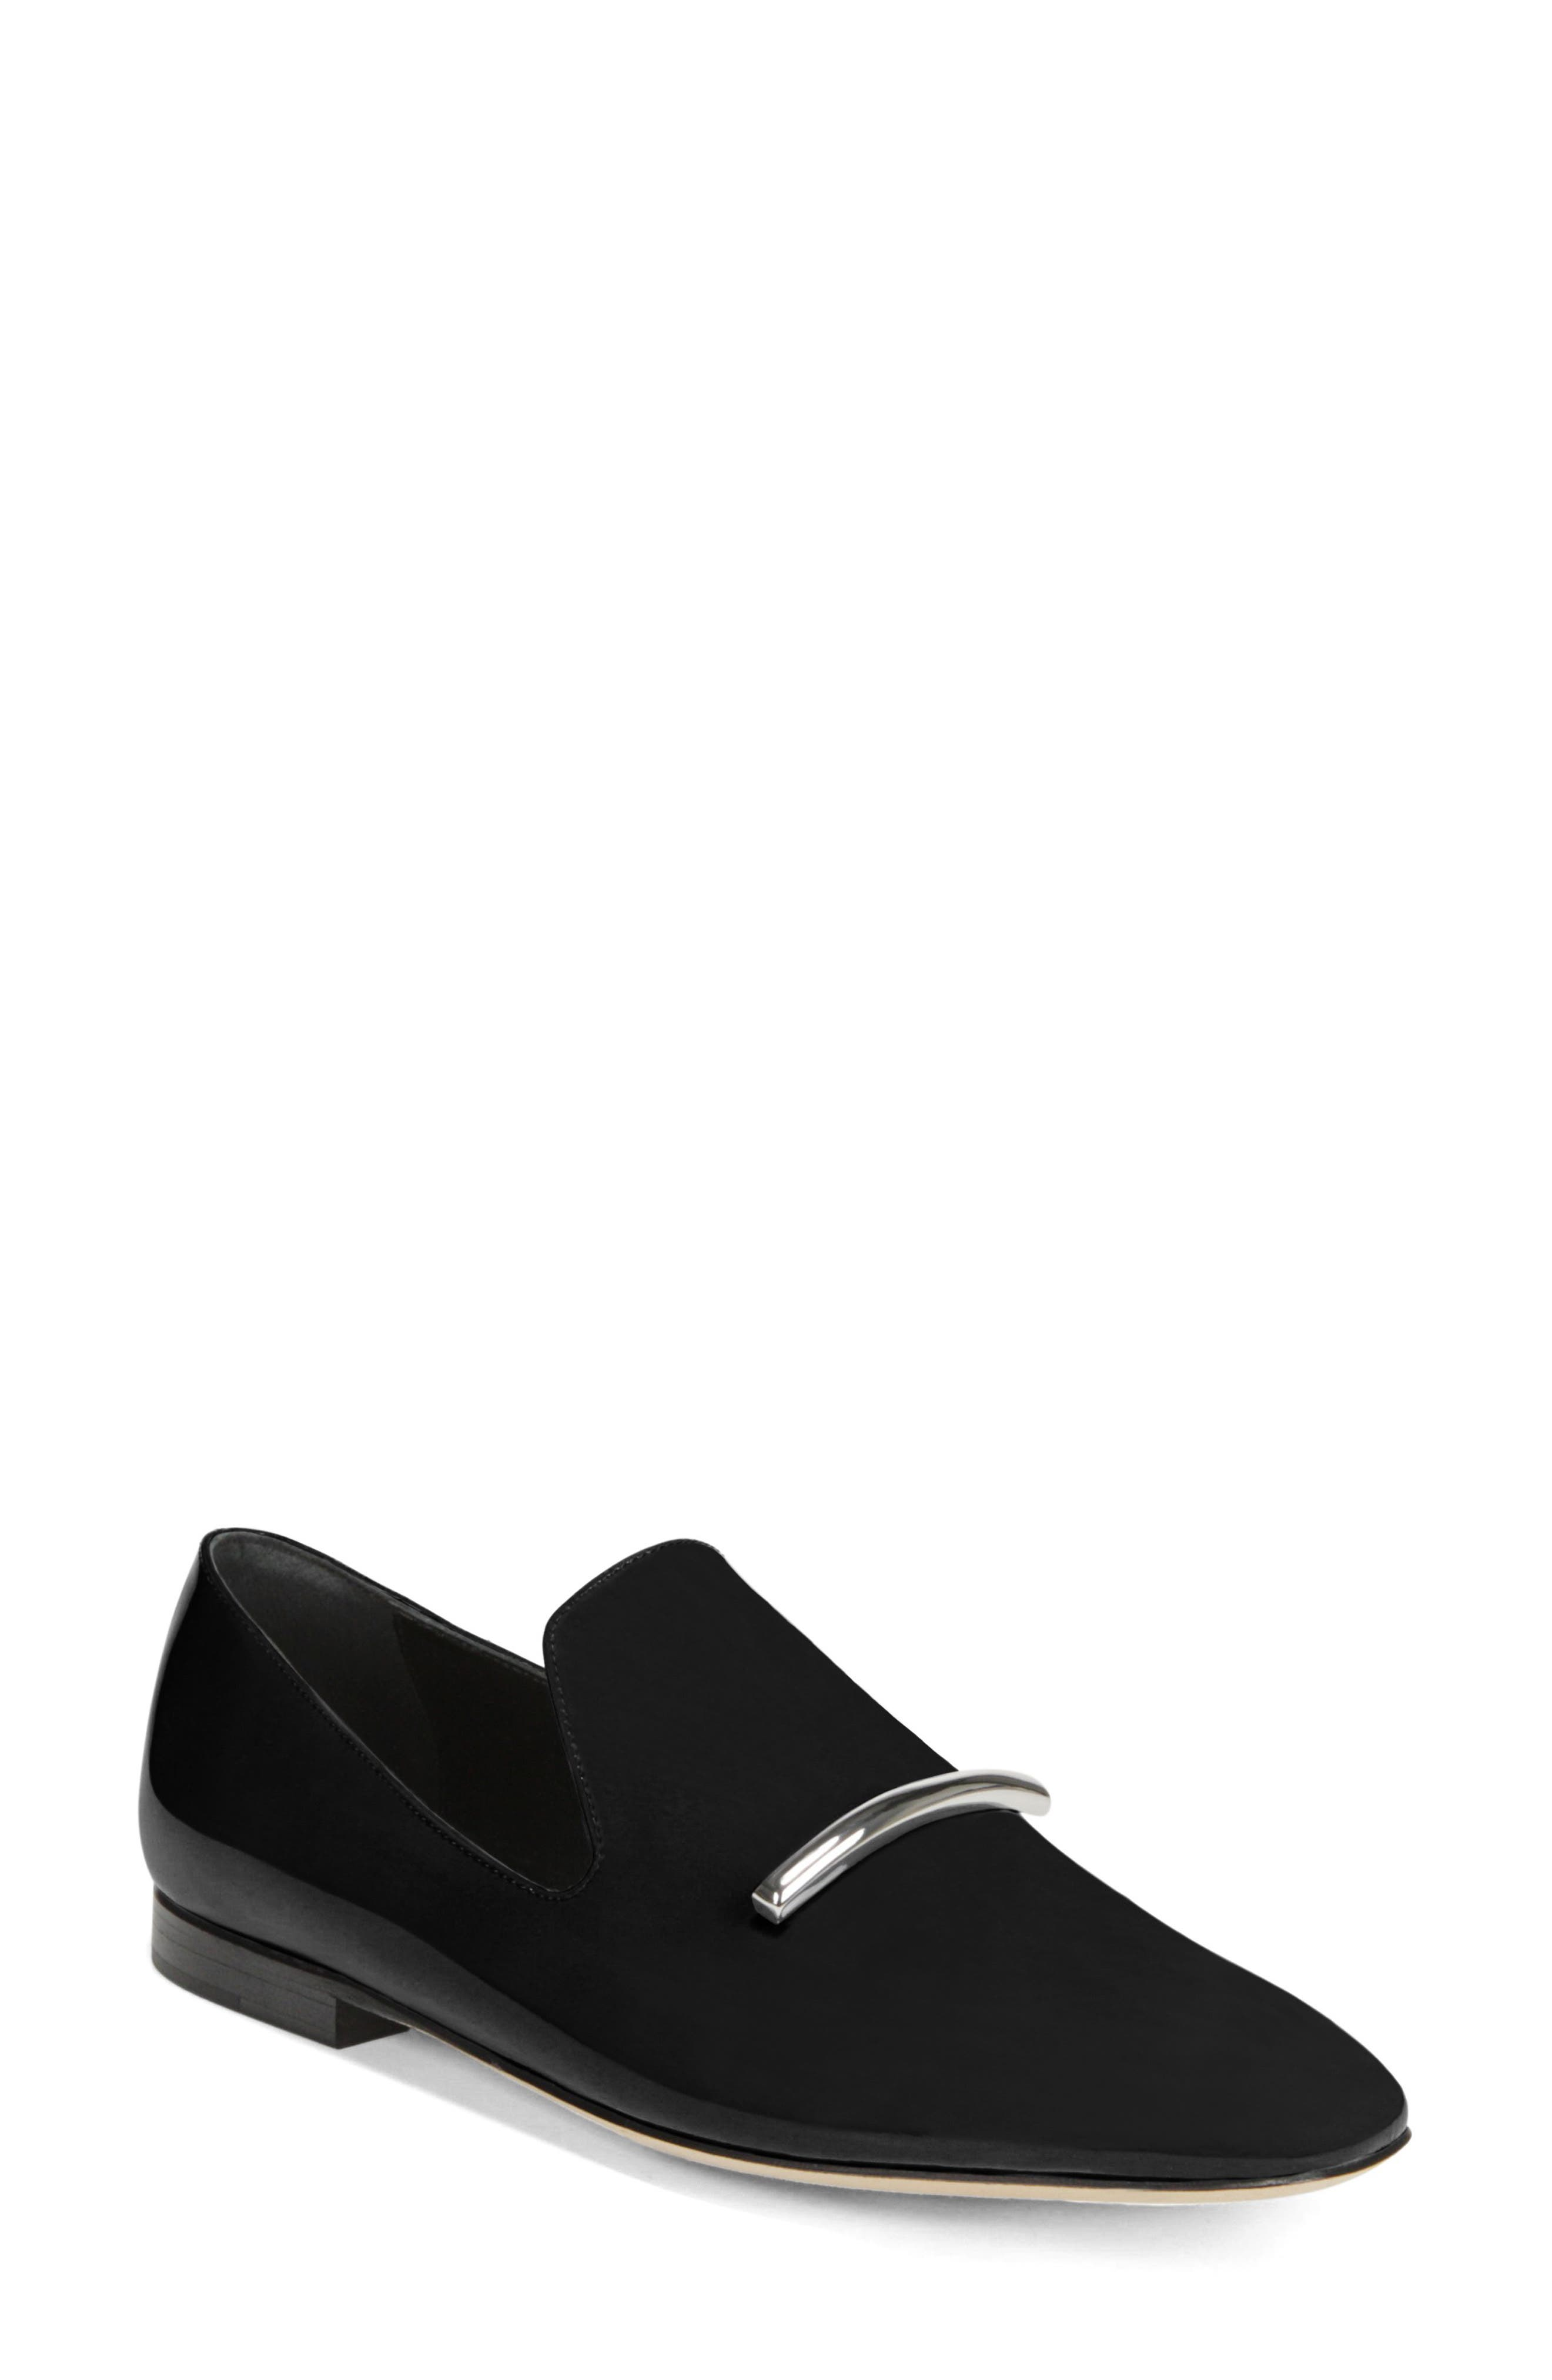 Tallis Patent Leather Flat Loafers in Black